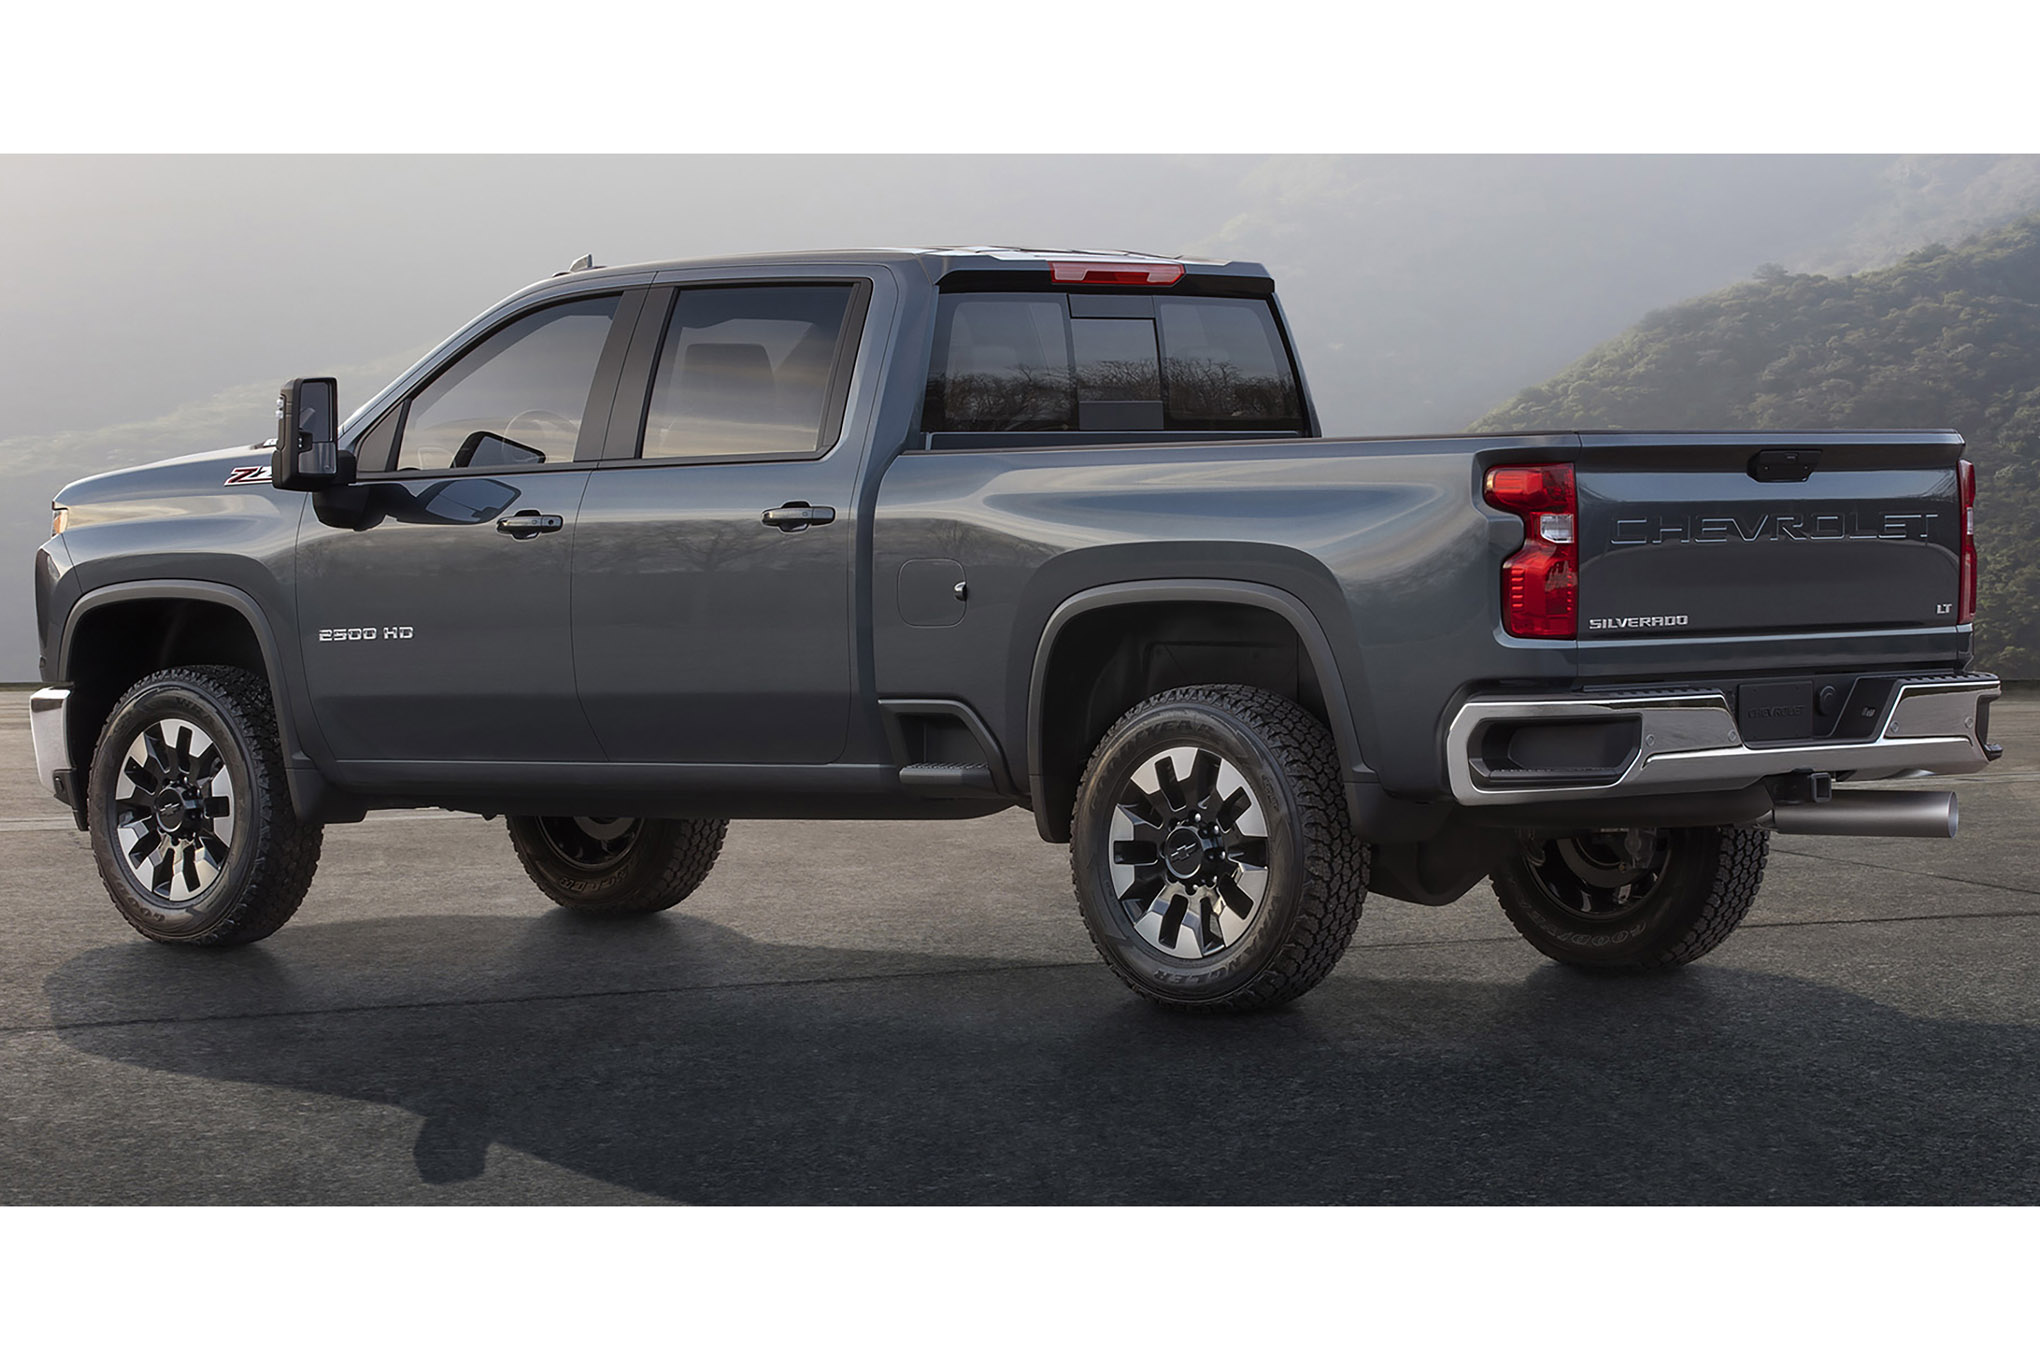 027 auto news four wheeler 2020 chevy silverado hd rear